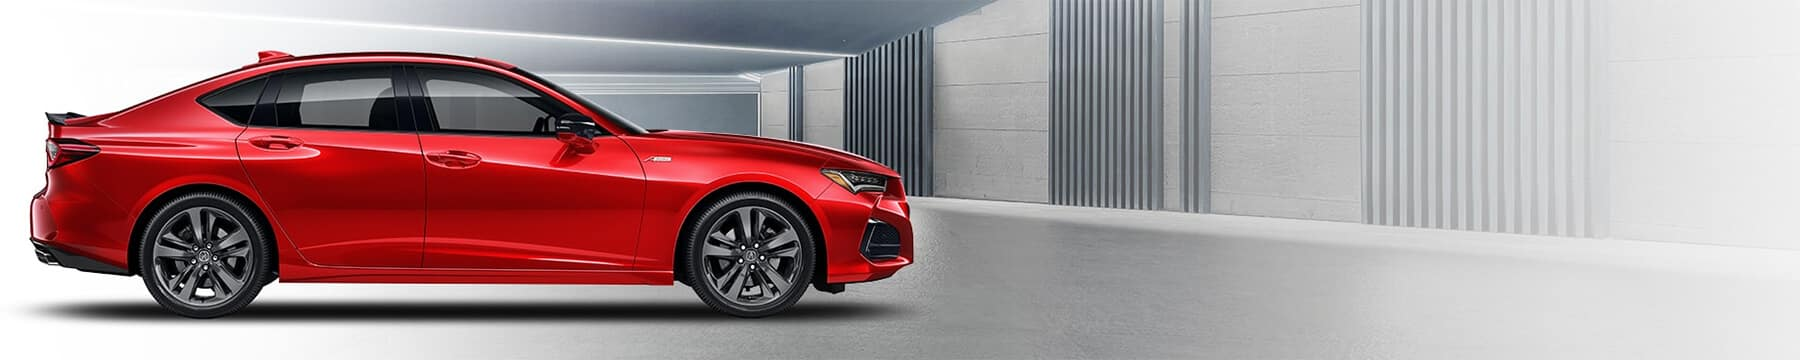 Acura TLX Lease Deals in Sioux Falls, SD Banner